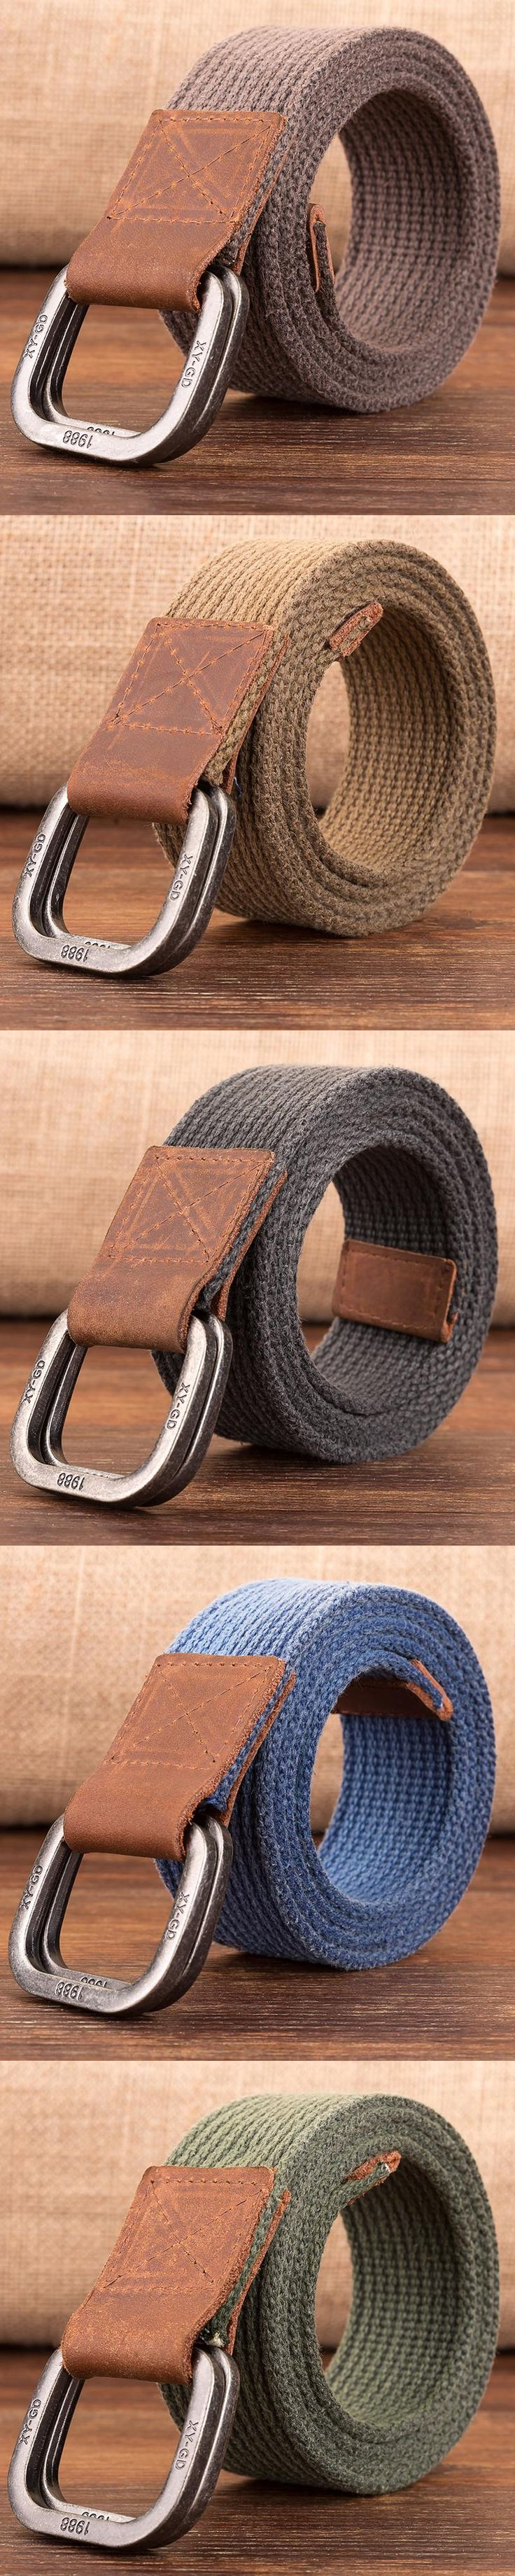 Luxury Men Belt Top Quality Outdoor Army Tactical Belts for Men Double Buckle Cowboy Knitted Strap Casual Nylon Cintos